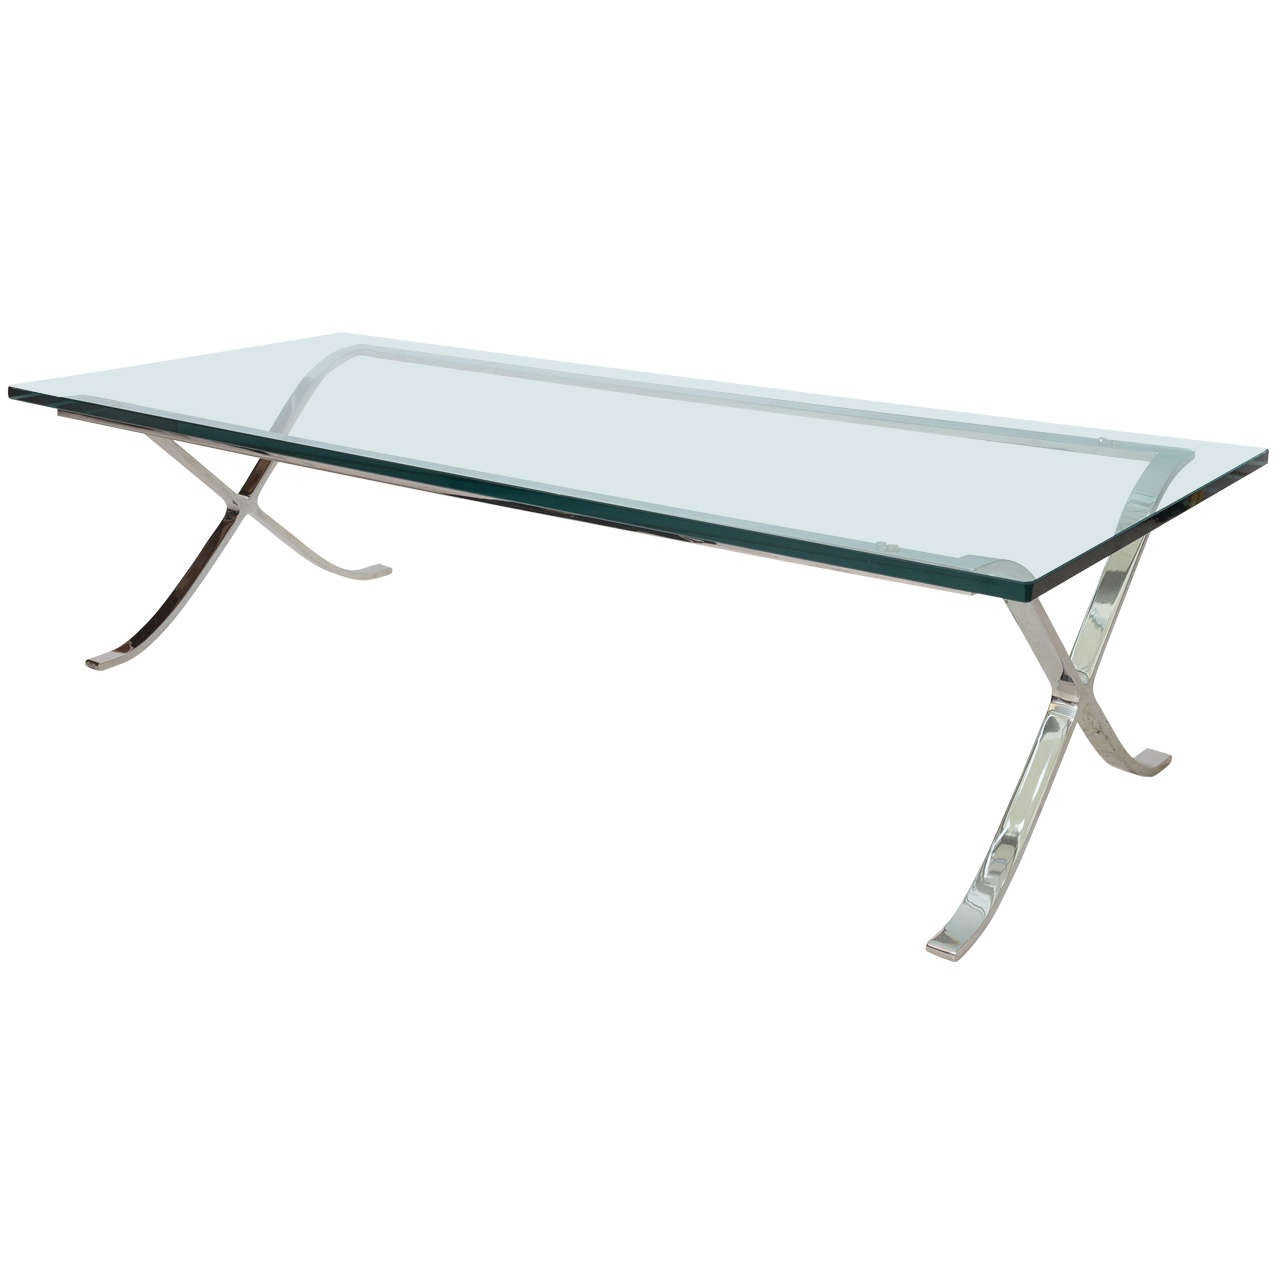 Modern rectangular glass and polished chrome x base cocktail table for sale at 1stdibs Glass coffee table base